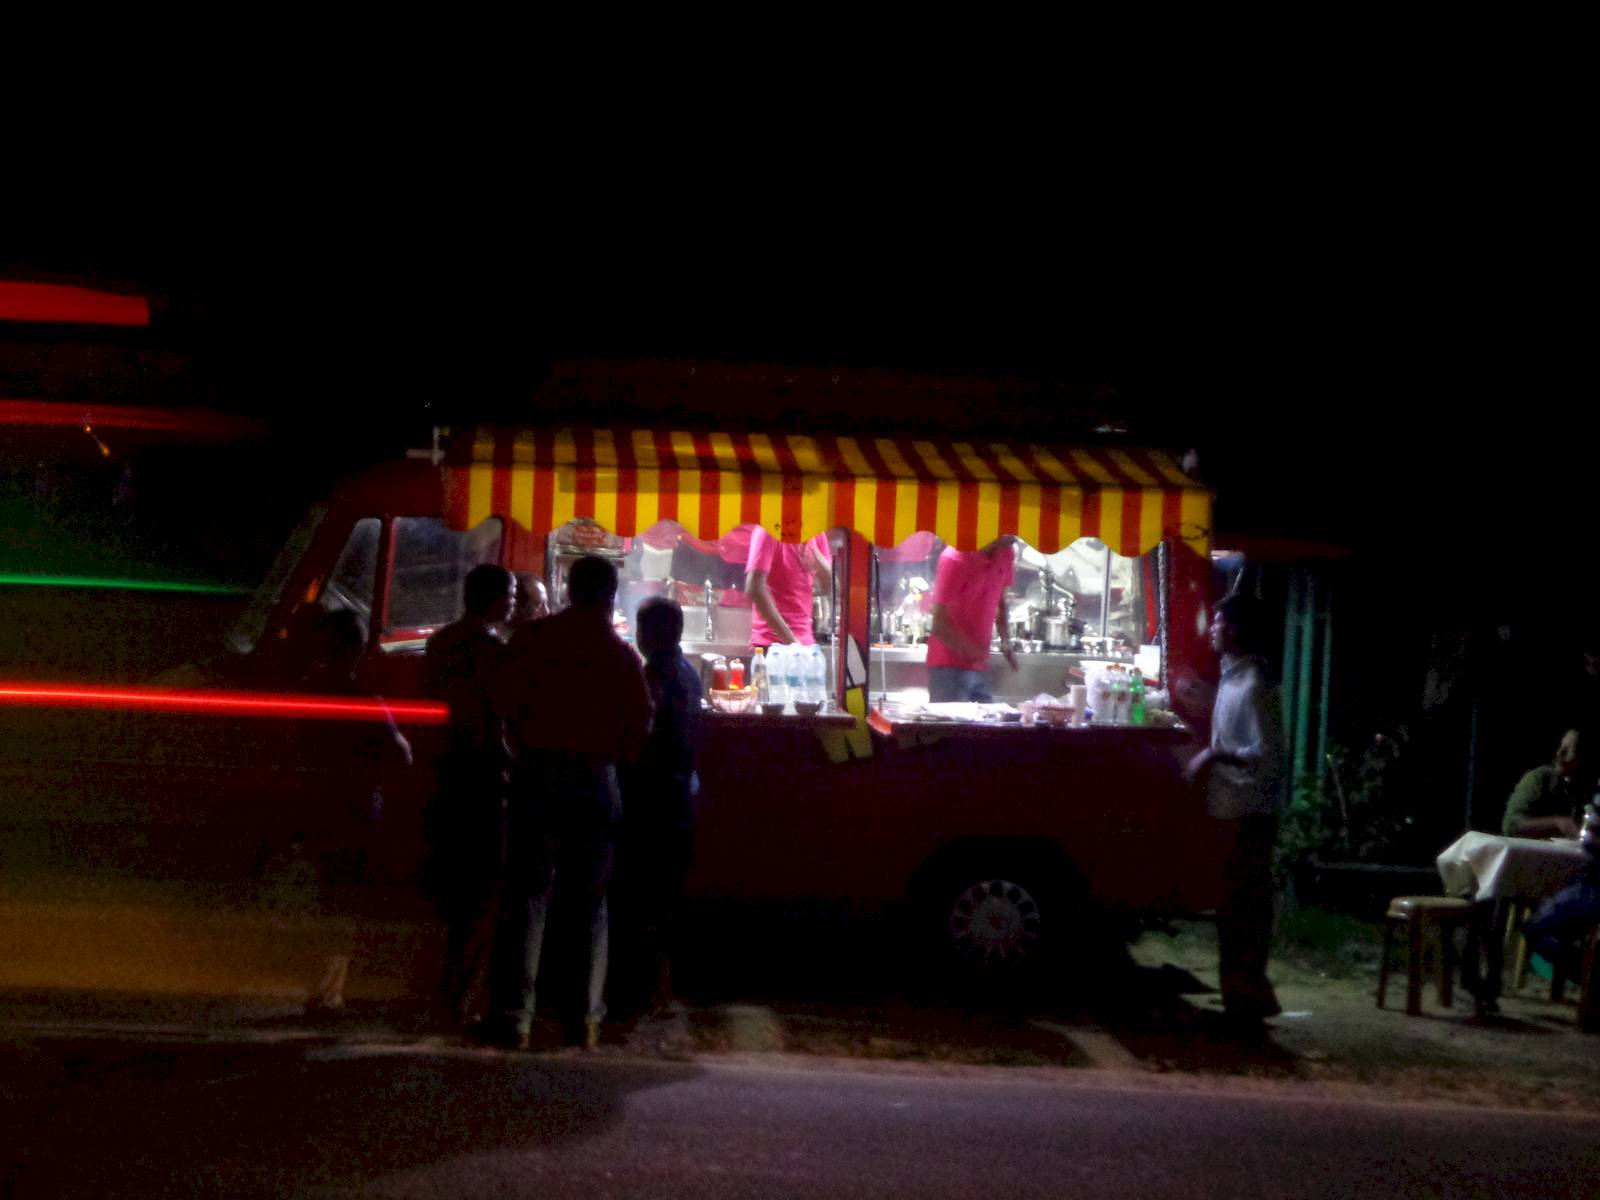 Roadside, mobile eateries, that operate after evening, are abundant in Munnar. I have seen similar mobile eateries in Shillong.